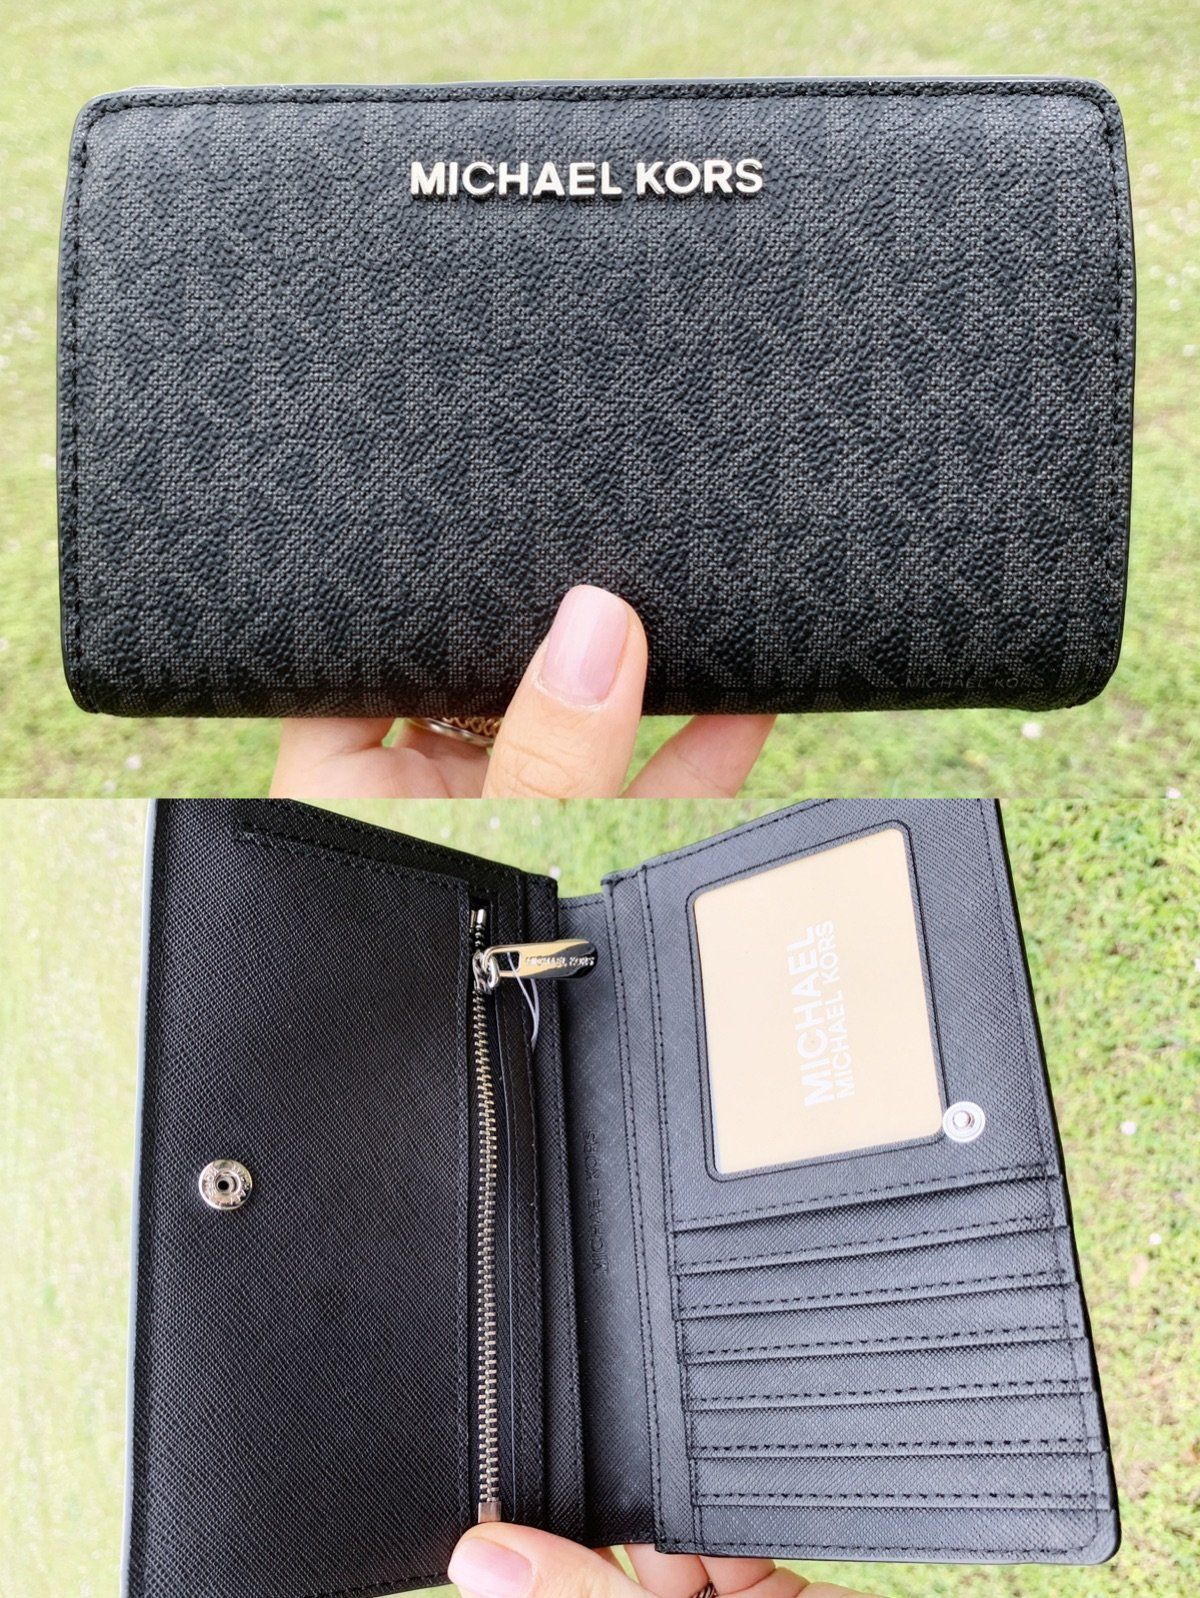 428a662c22d1 Michael Kors Jet Set Travel PVC Slim Bifold Wallet Black MK  ebaystore   poshboss  top  amazondeals  poshfashion  ebayseller  amazon  Poshmark   Handbags ...